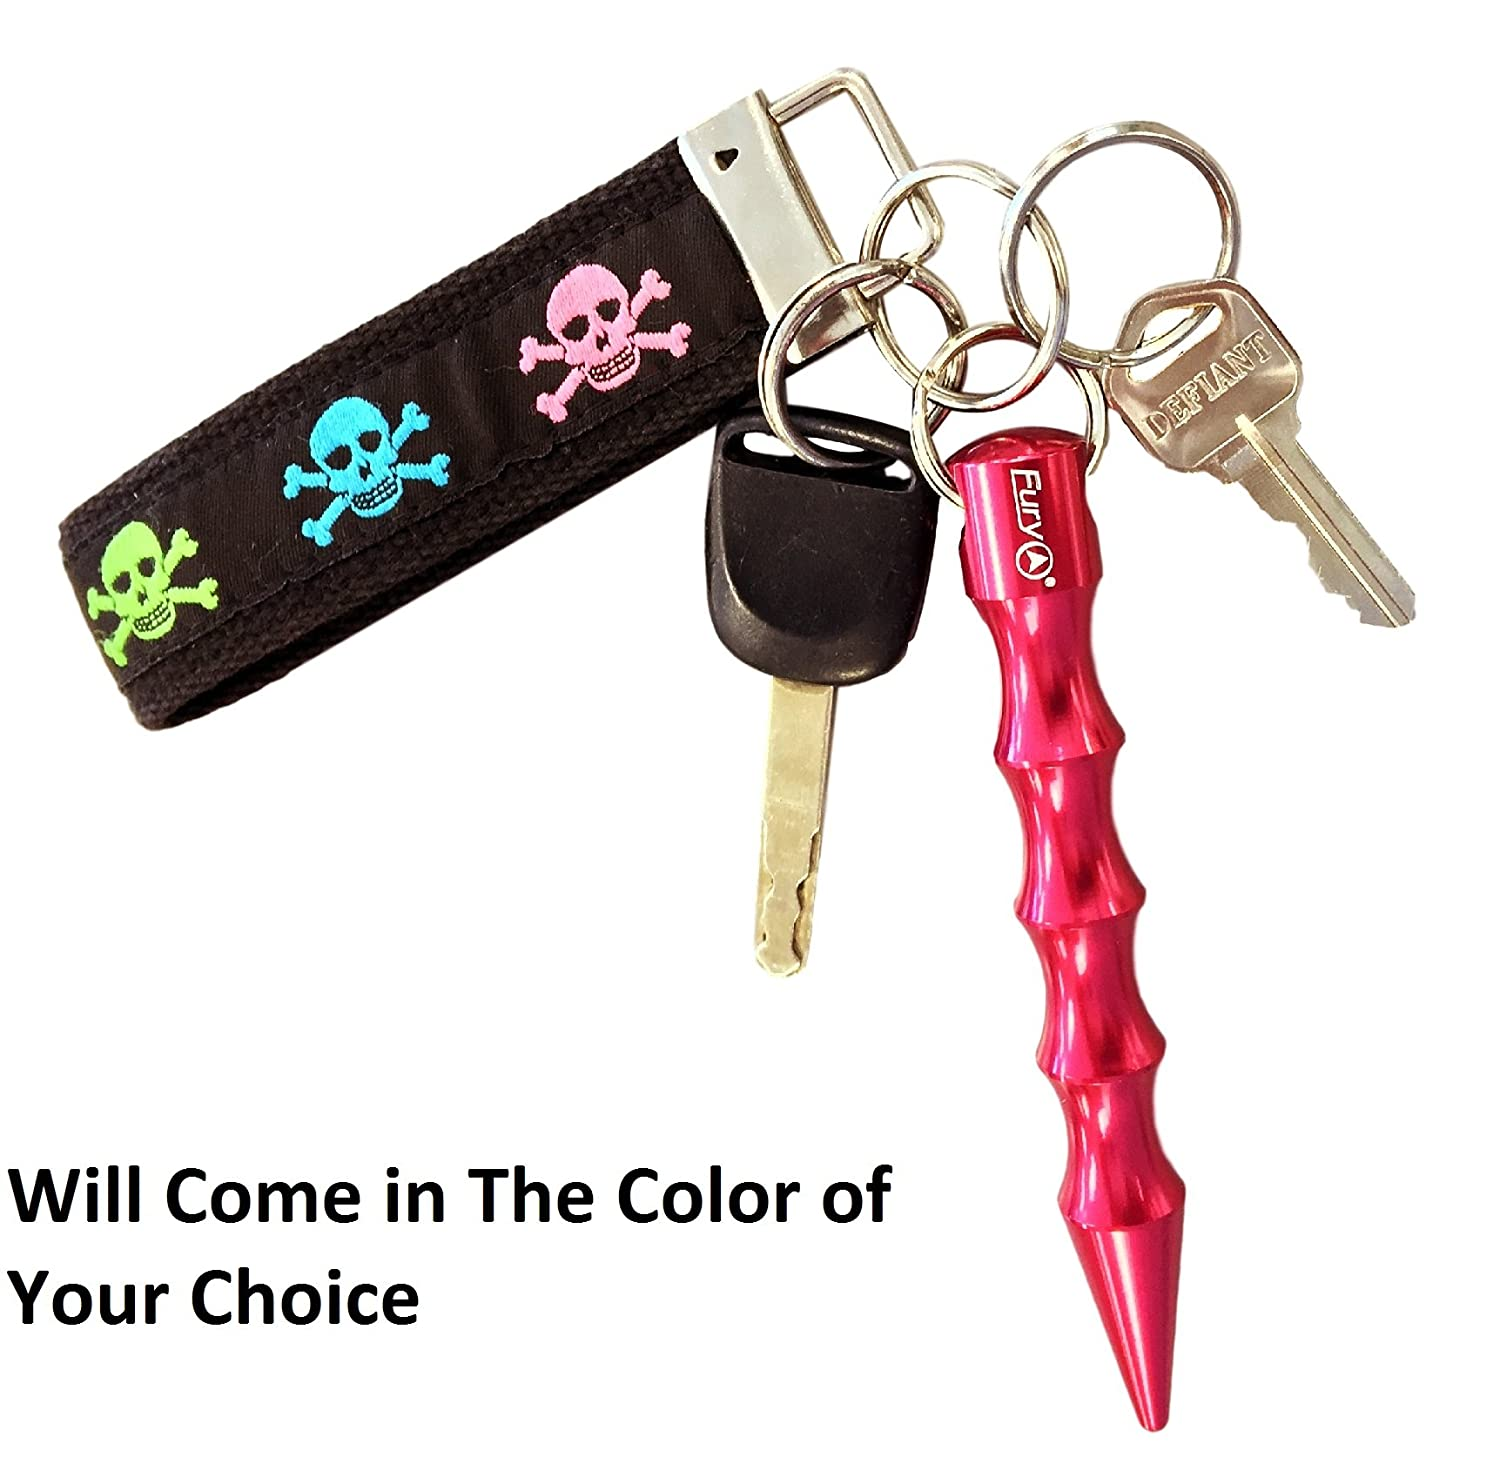 Amazon.com : Fury Tactical Self Defense Keychain with Pressure Tip, 5.75